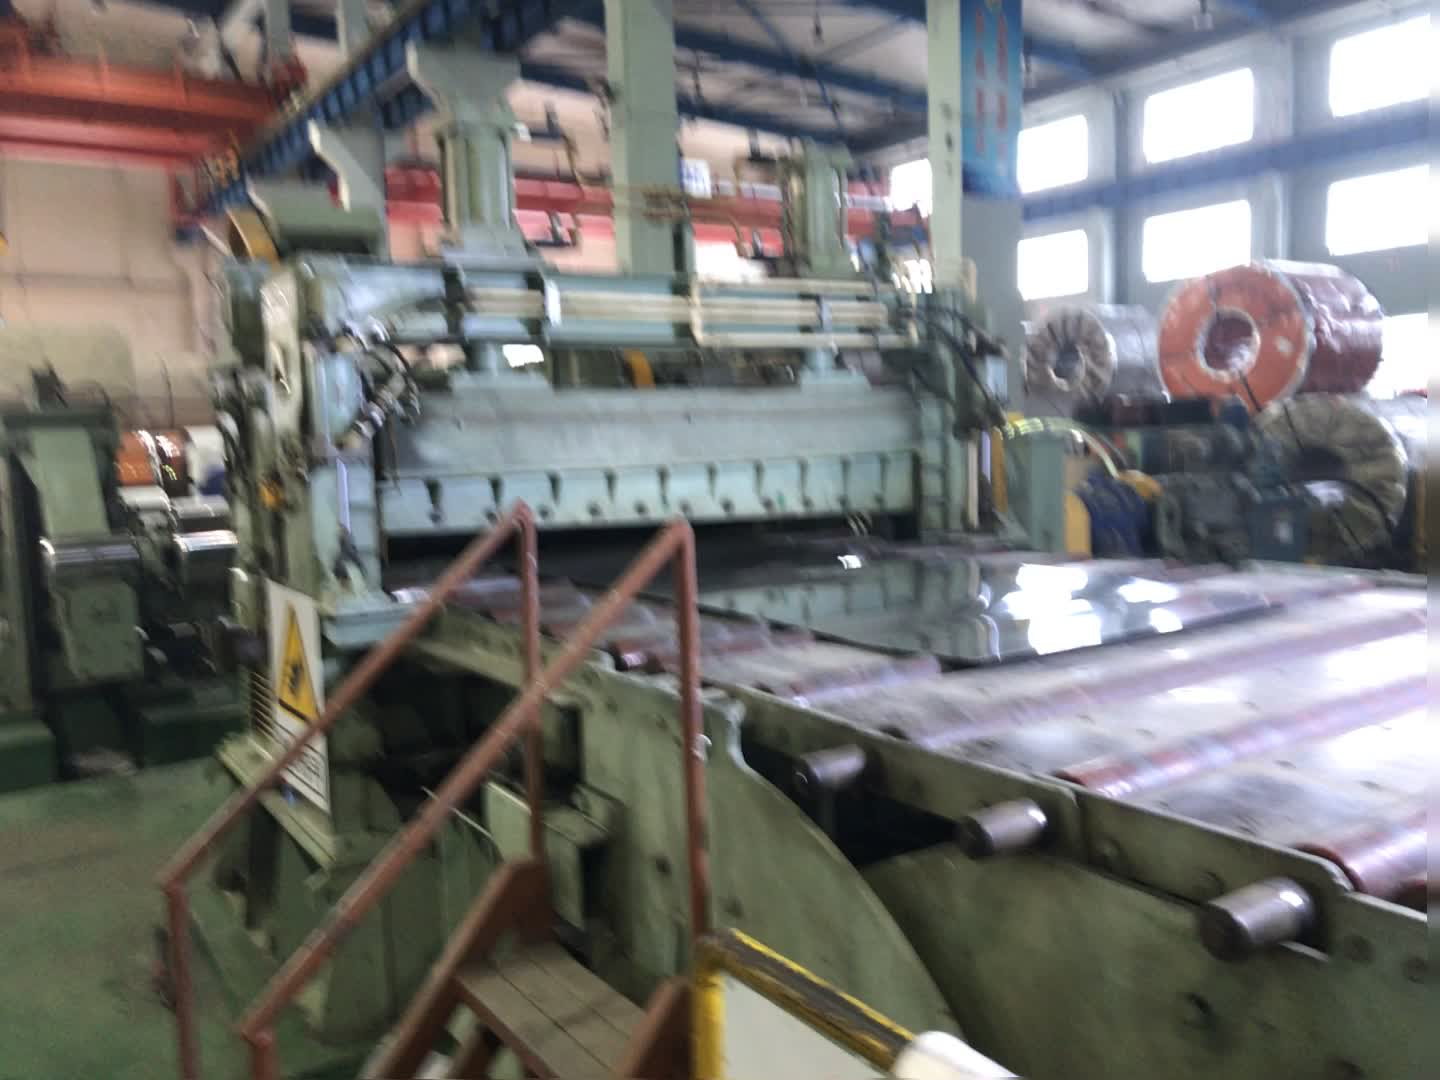 Stainless Steel 201 304 316 409 Plate/Lembar/Coil/Strip/201 SS 304 Din 1.4305 Stainless steel Coil Produsen